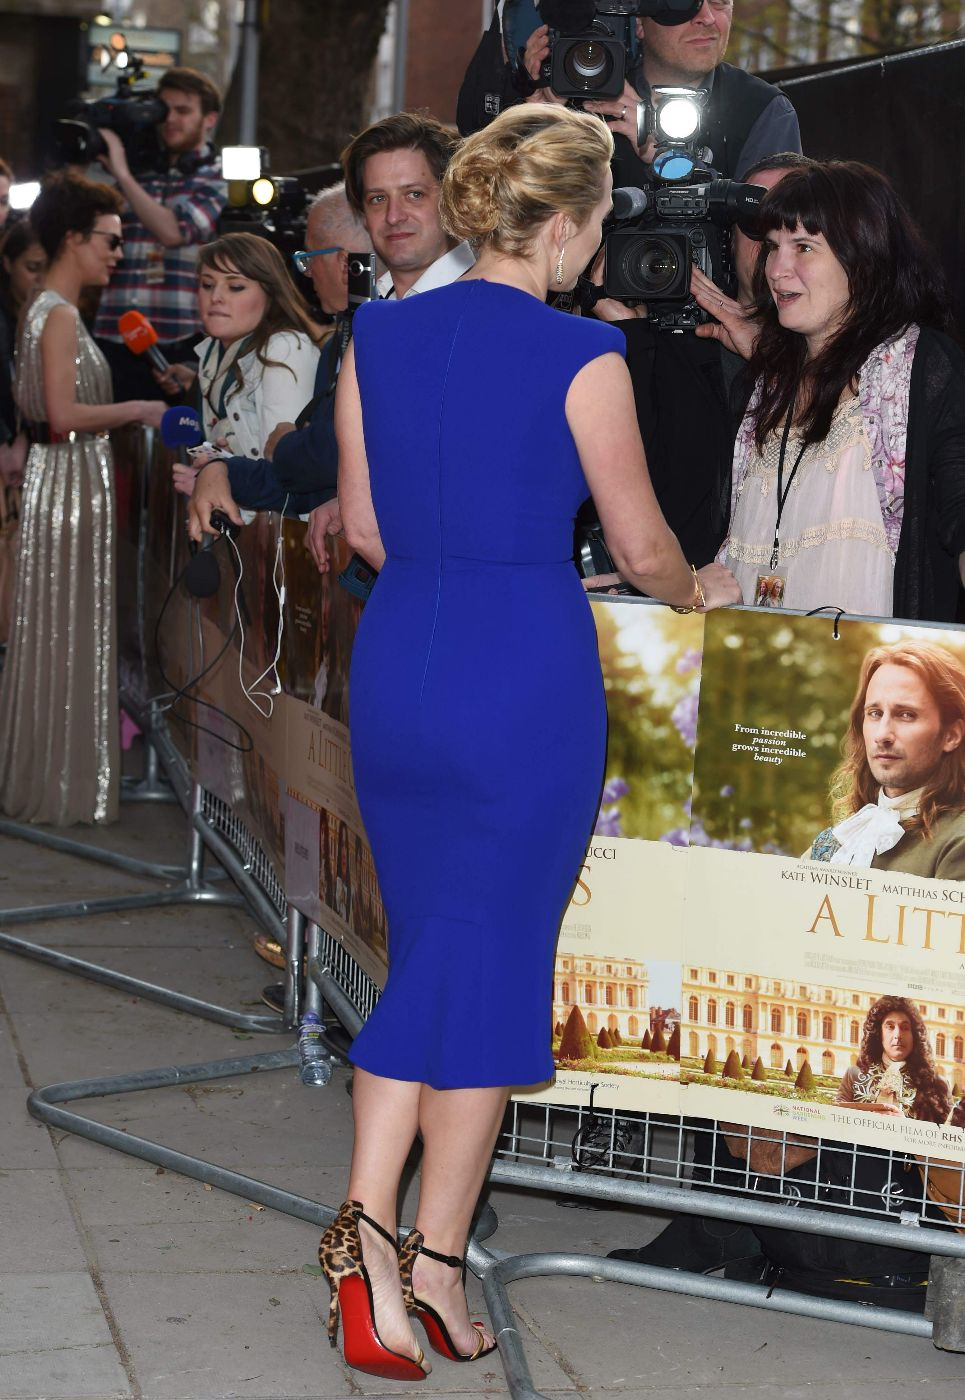 Kate-Winslet-A-Little-Chaos-premiere-in-London-April-